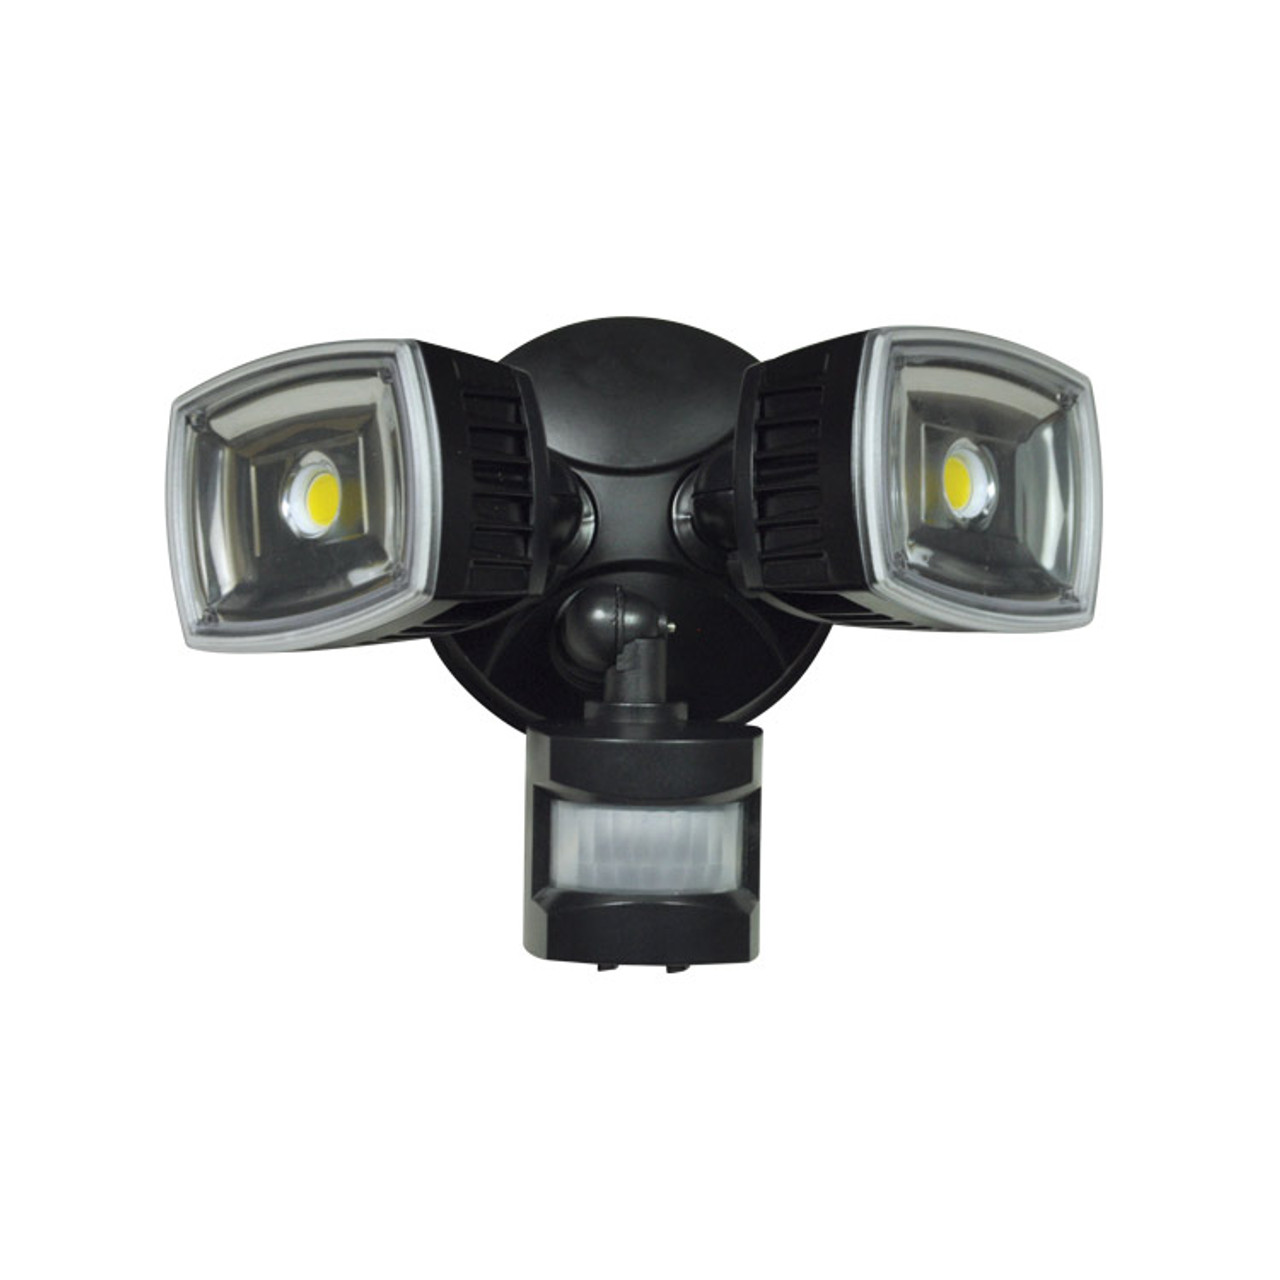 Remarquable RAB DESIGN LED Twin Floodlight Motion Detector 28W - TremTech HQ-42